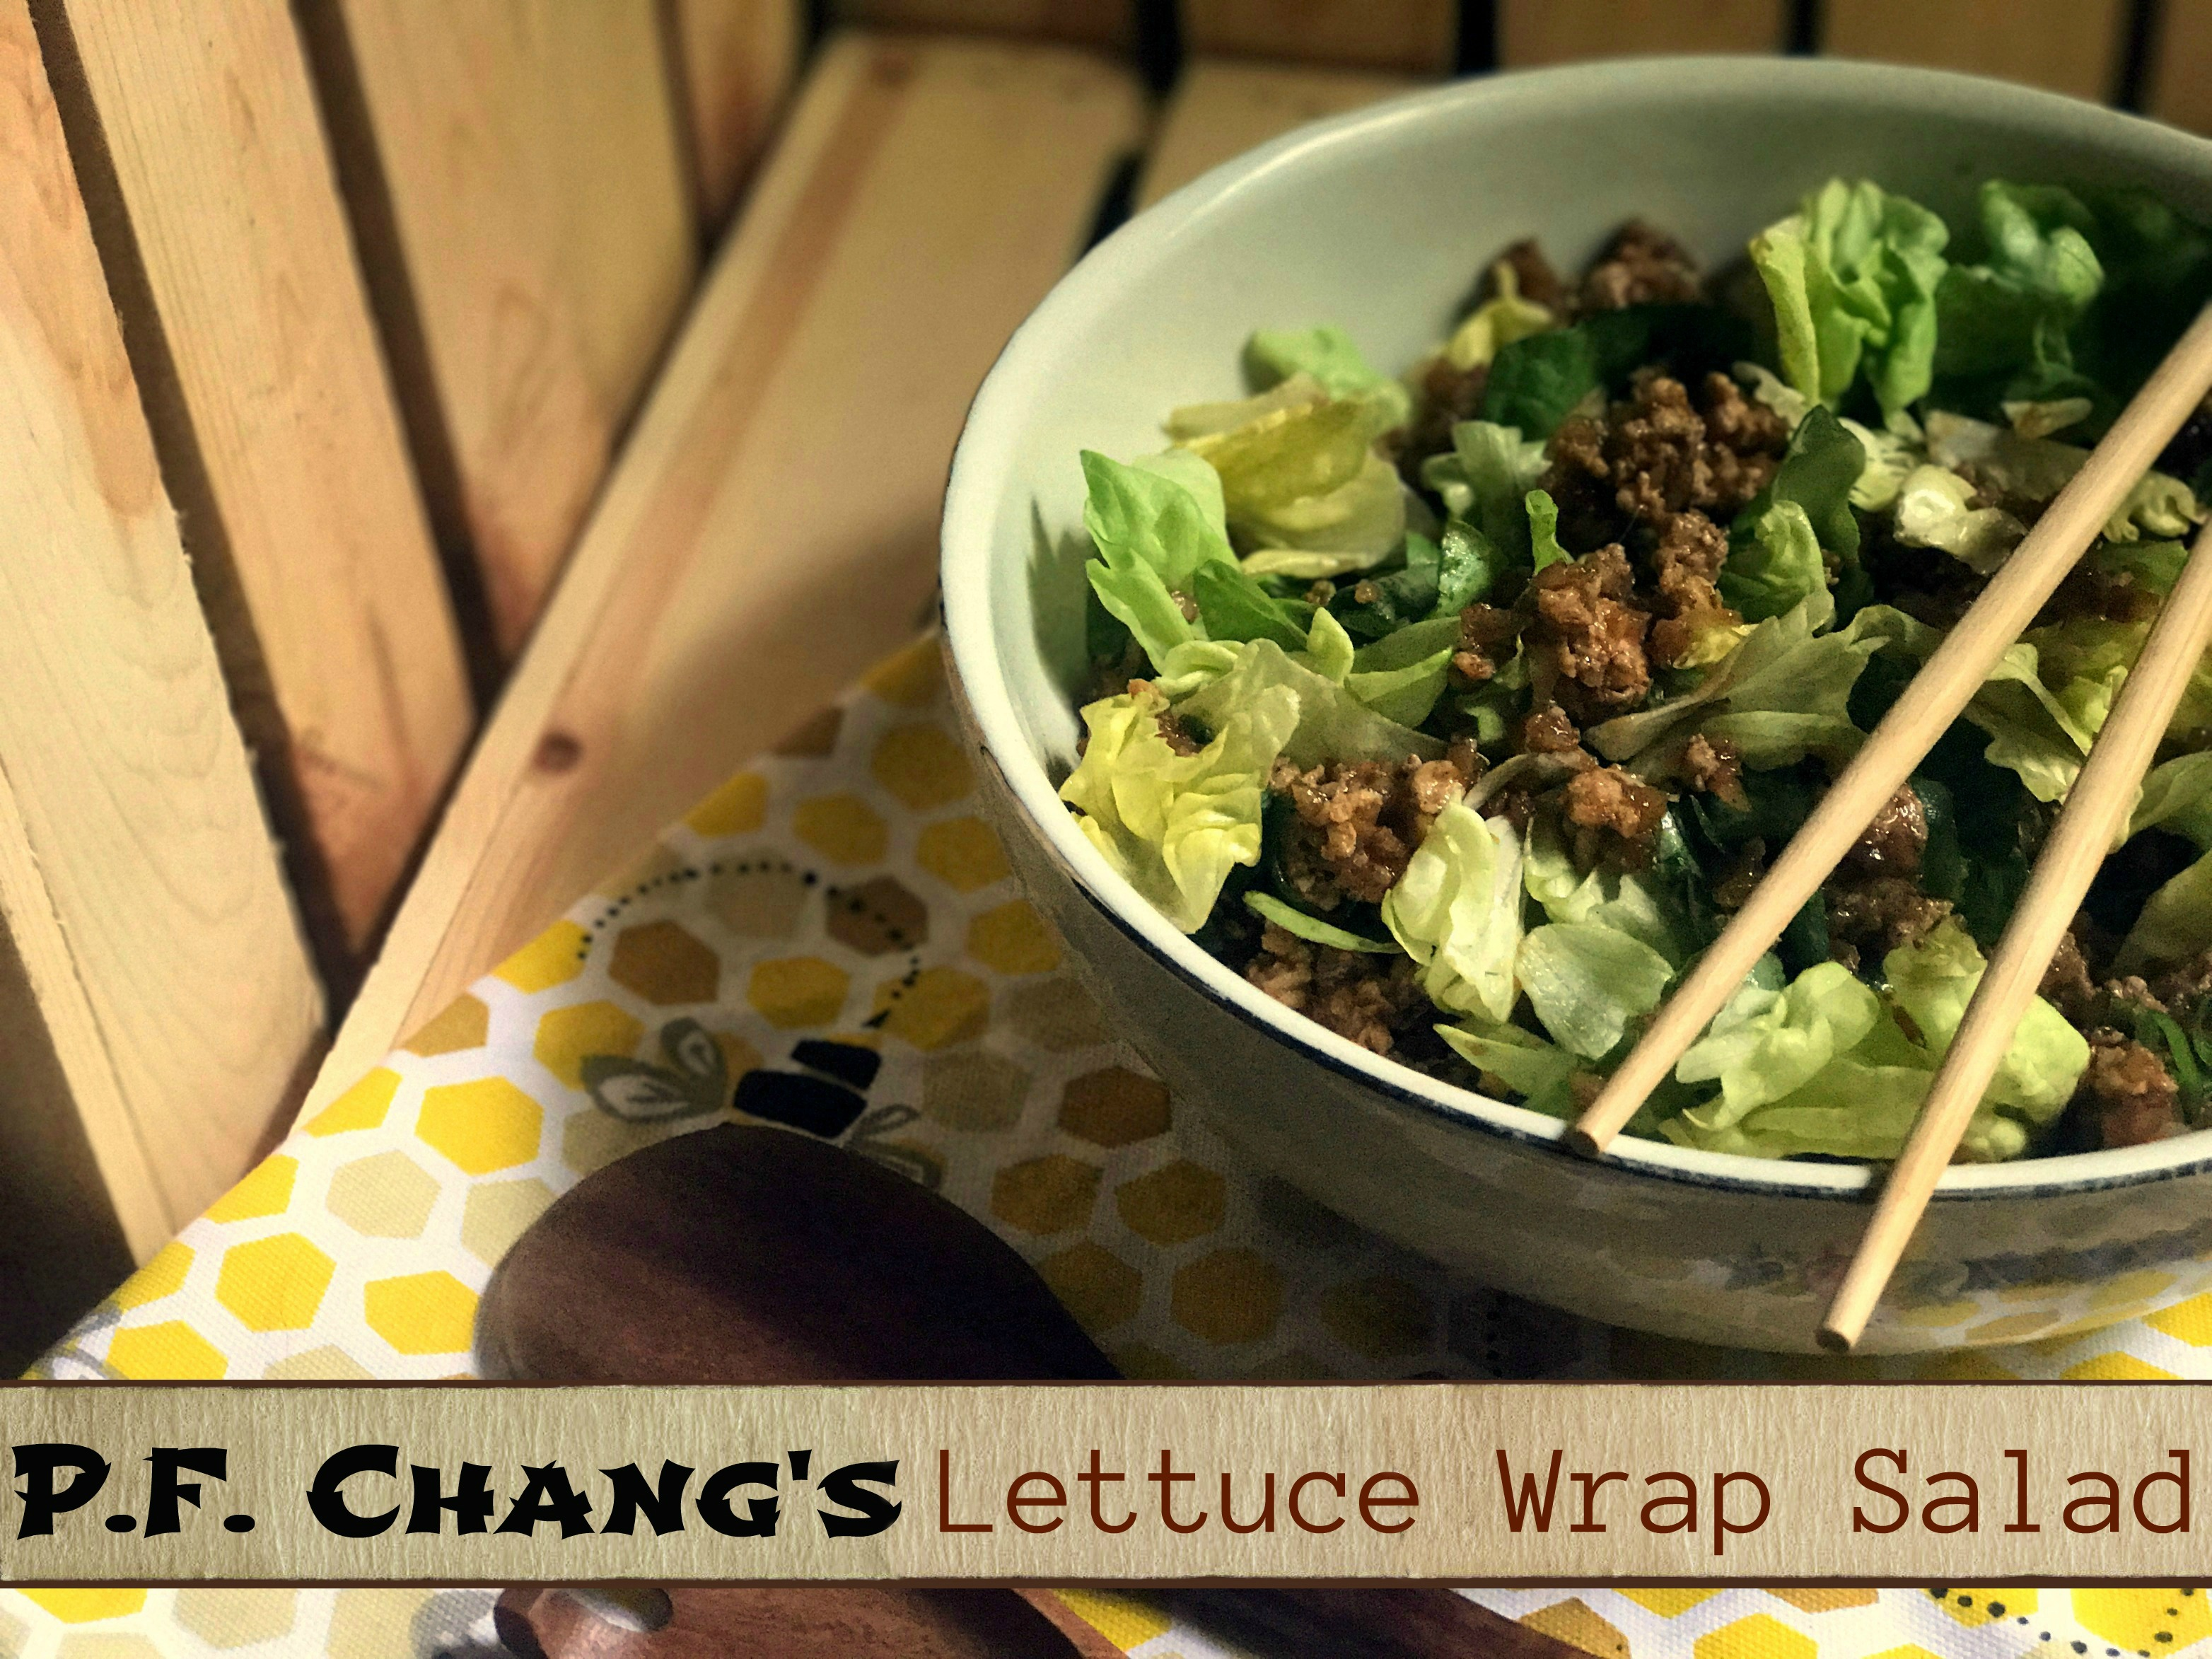 P.F. Chang's Lettuce Wrap Salad